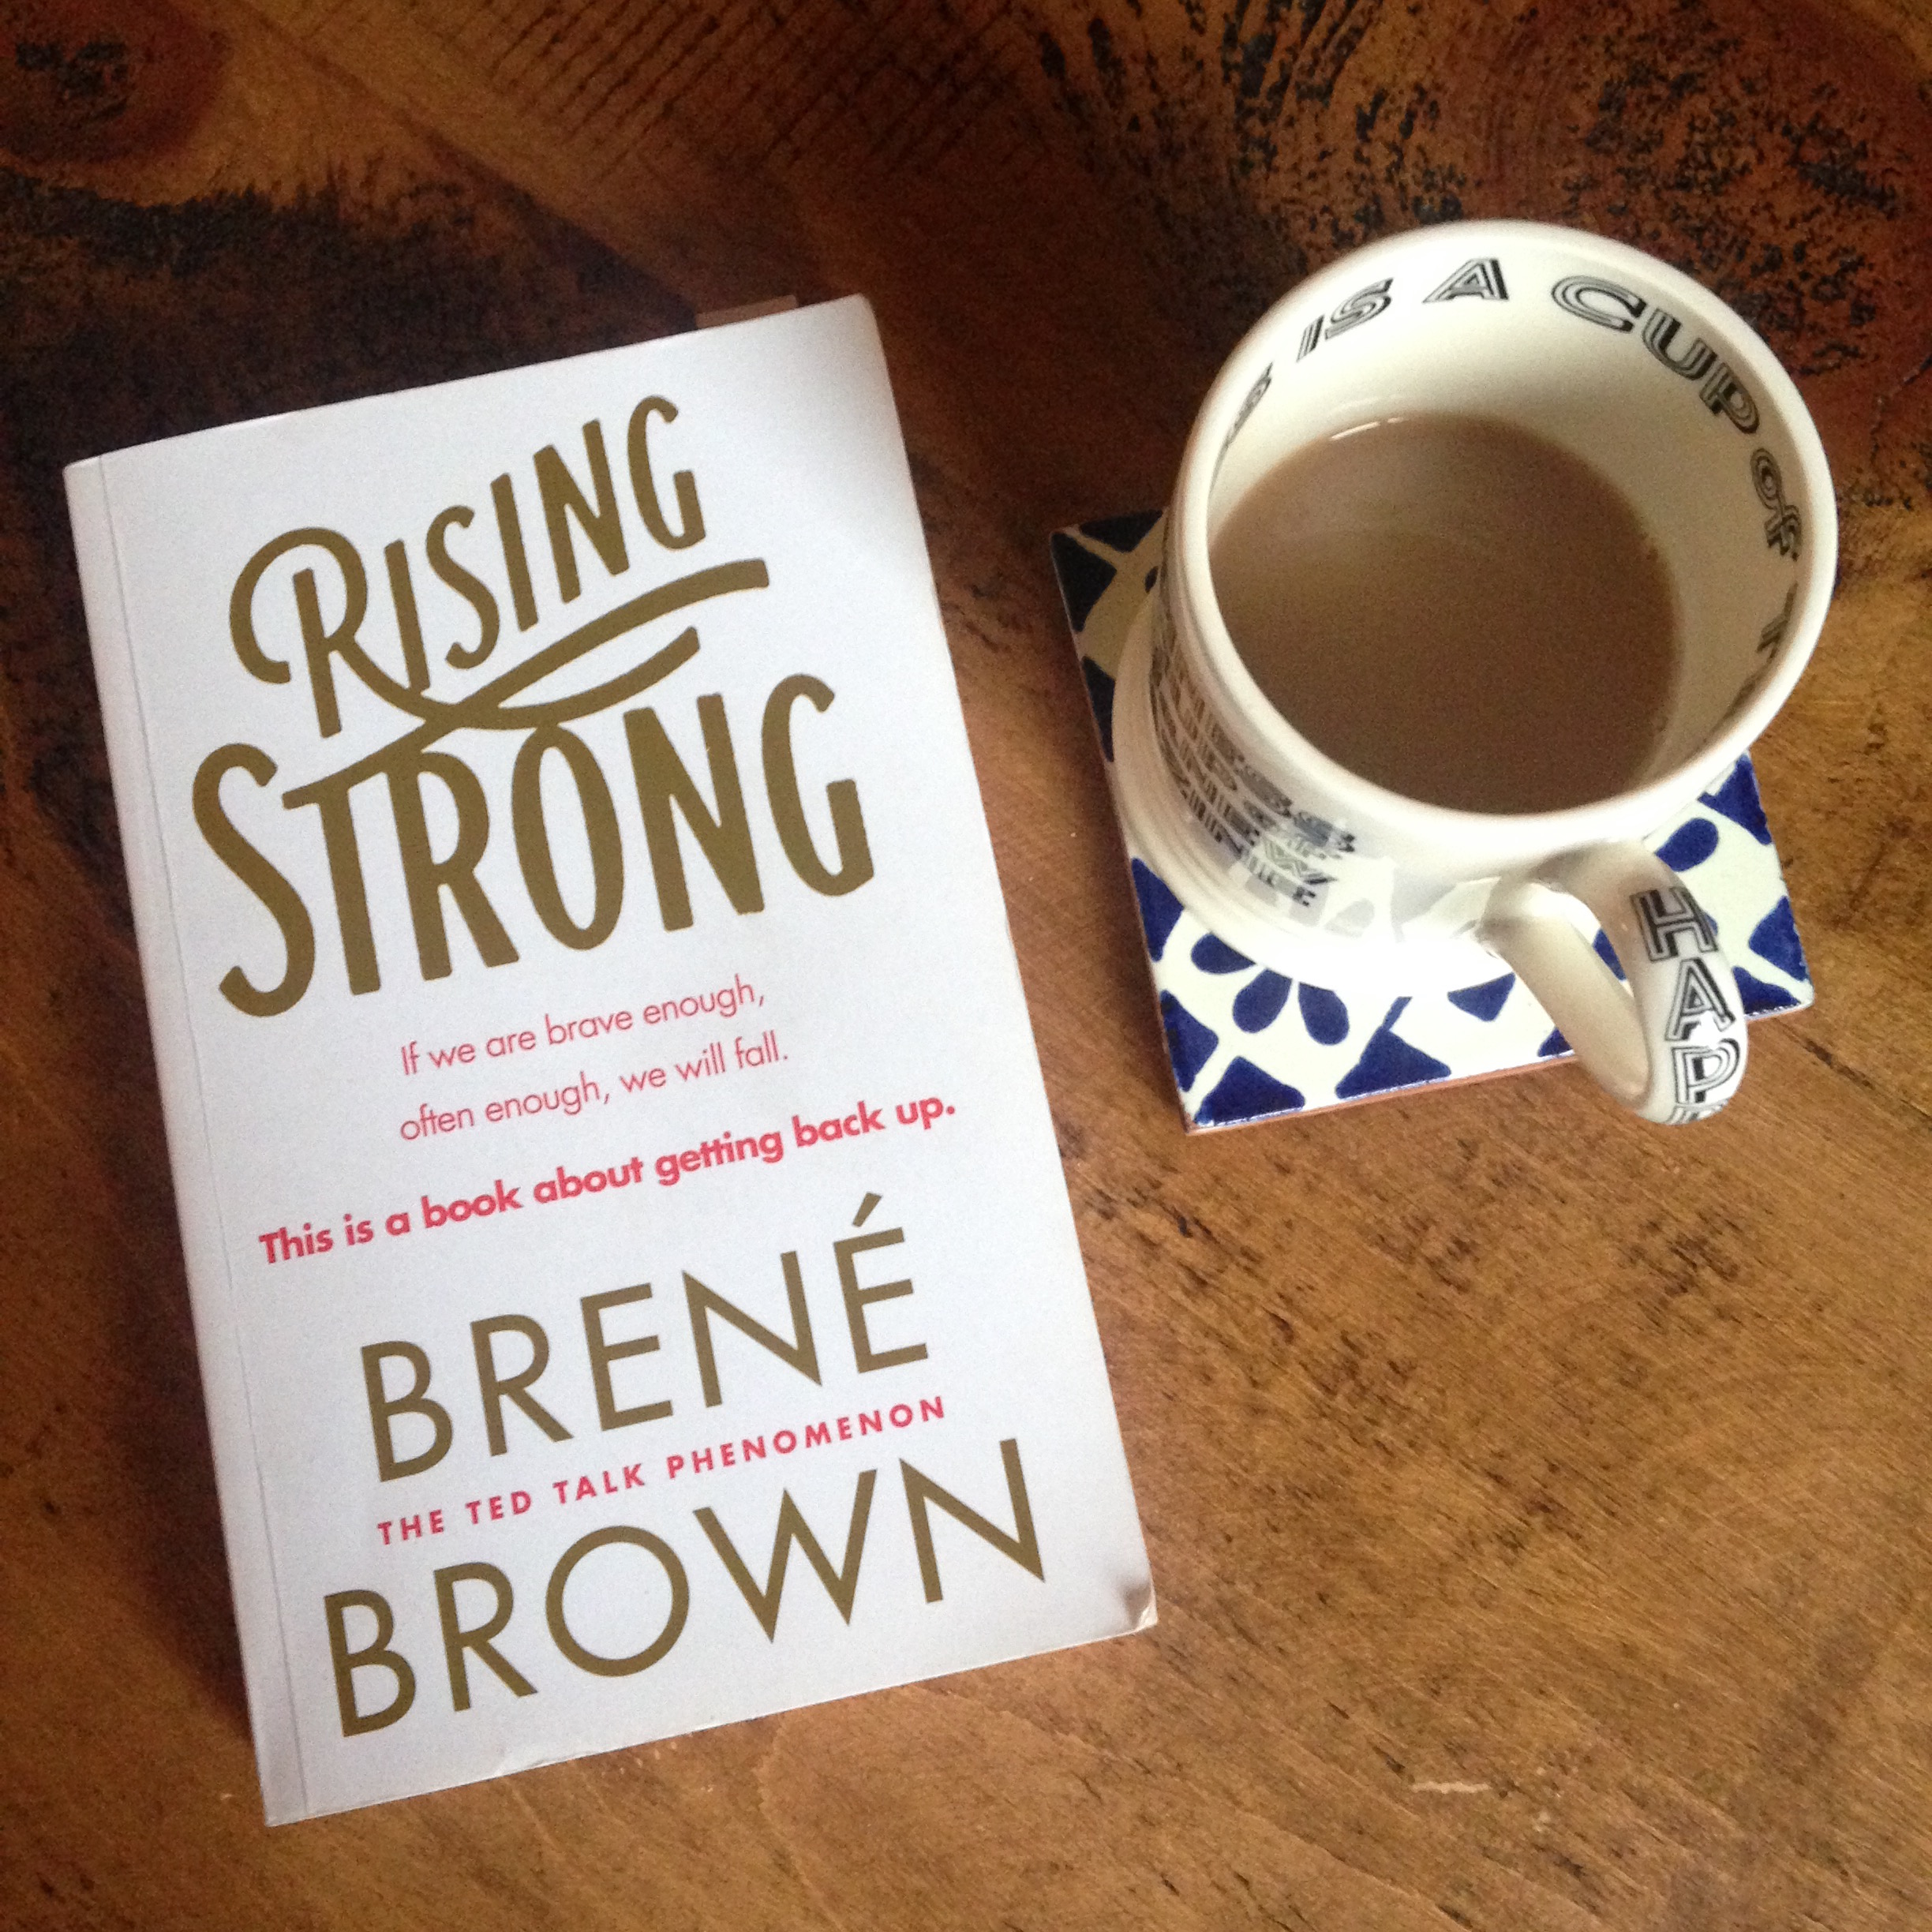 Reading Rising Strong